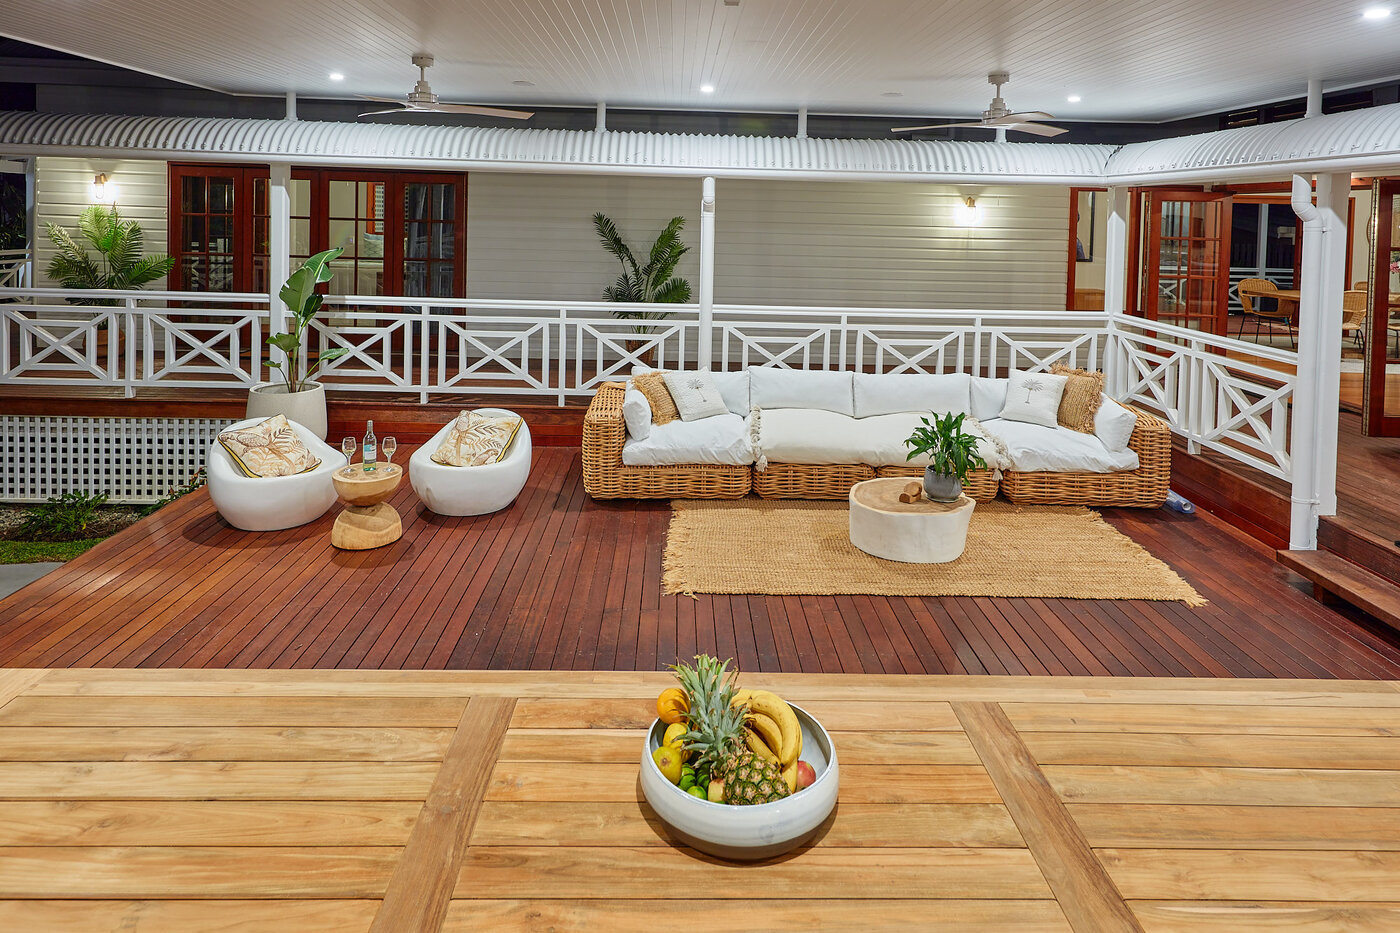 Custom designed roof & deck extension to create outdoor living space